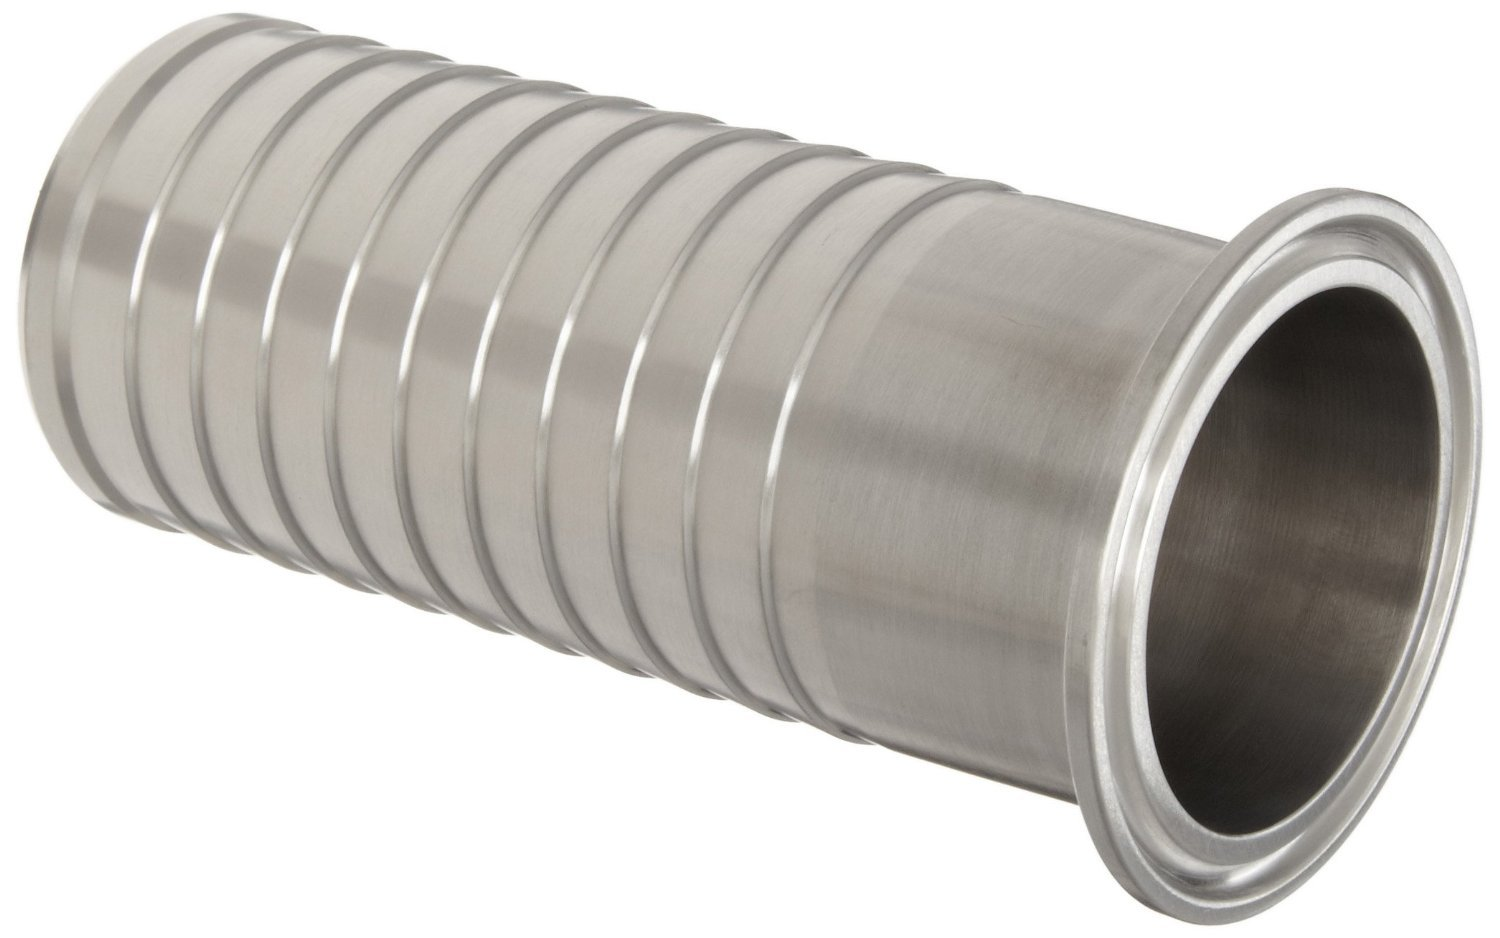 Dixon 14MPHRL200 Stainless Steel 304 Sanitary Fitting, Brewery Hose Adapter, 2'' Tube OD x 2'' Hose ID Barbed